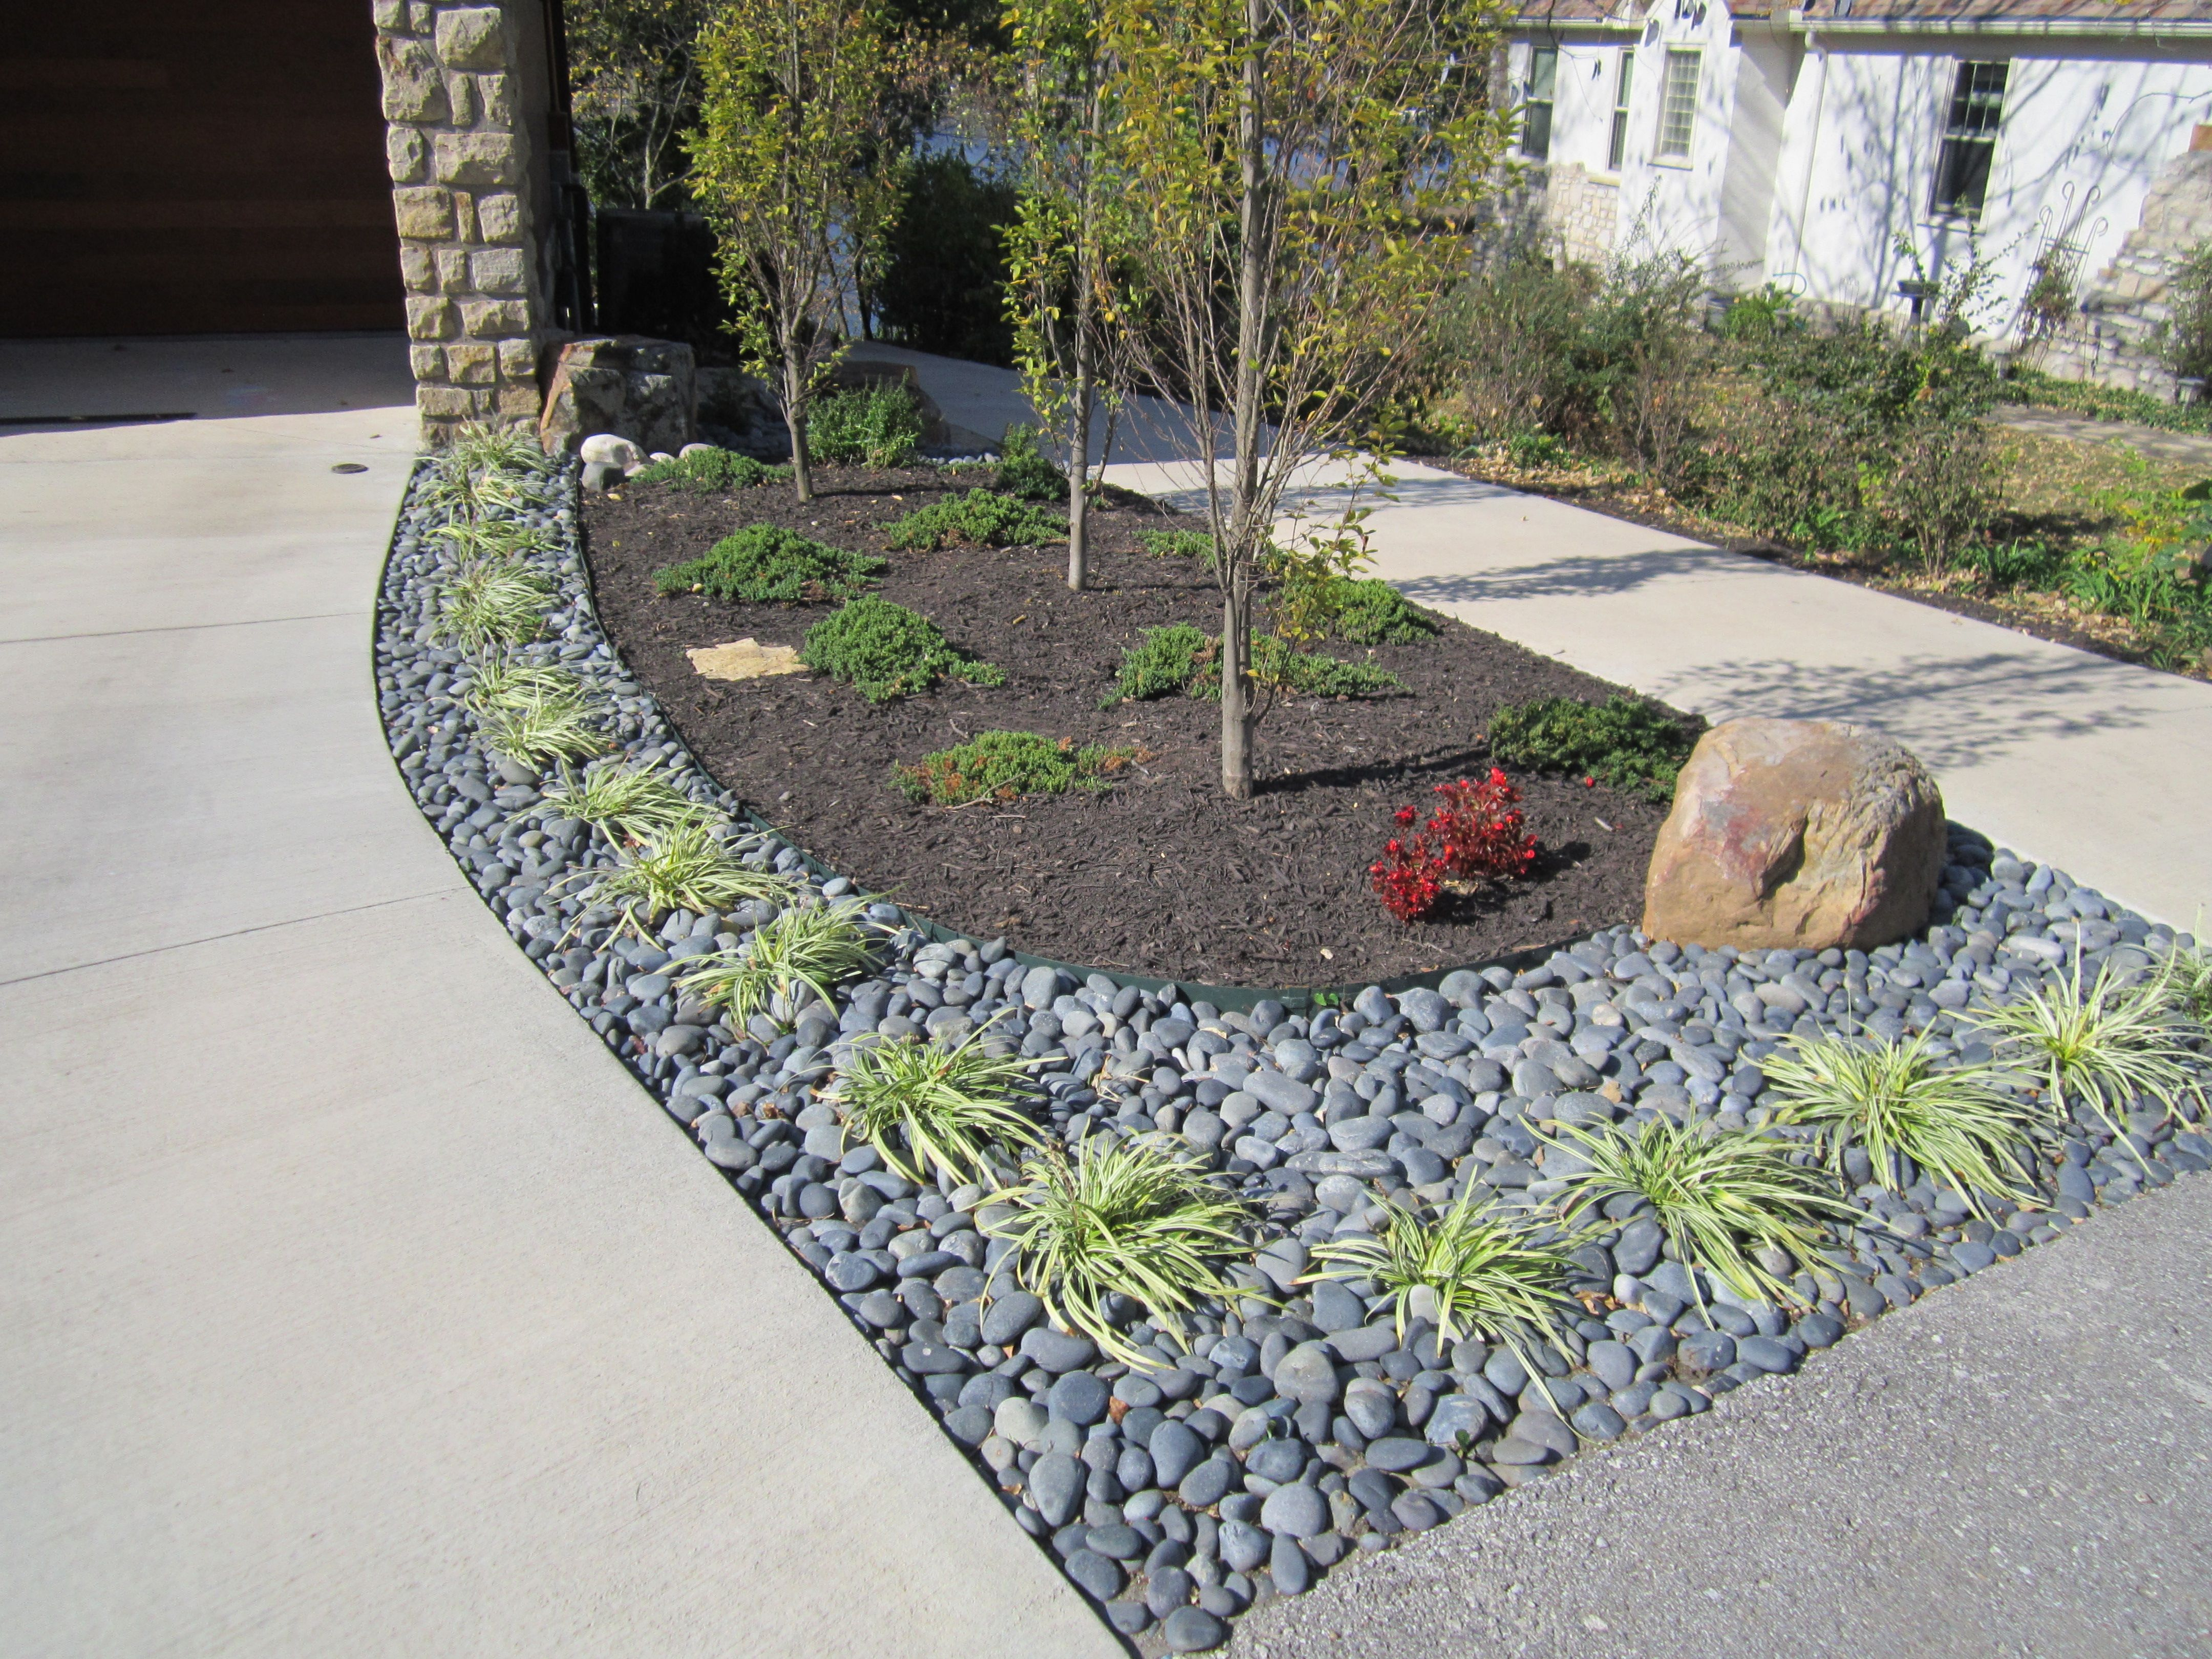 Landscaping: Side Yard Renovation by Driveway | Landscape ... on Backyard Renovation Companies id=88188